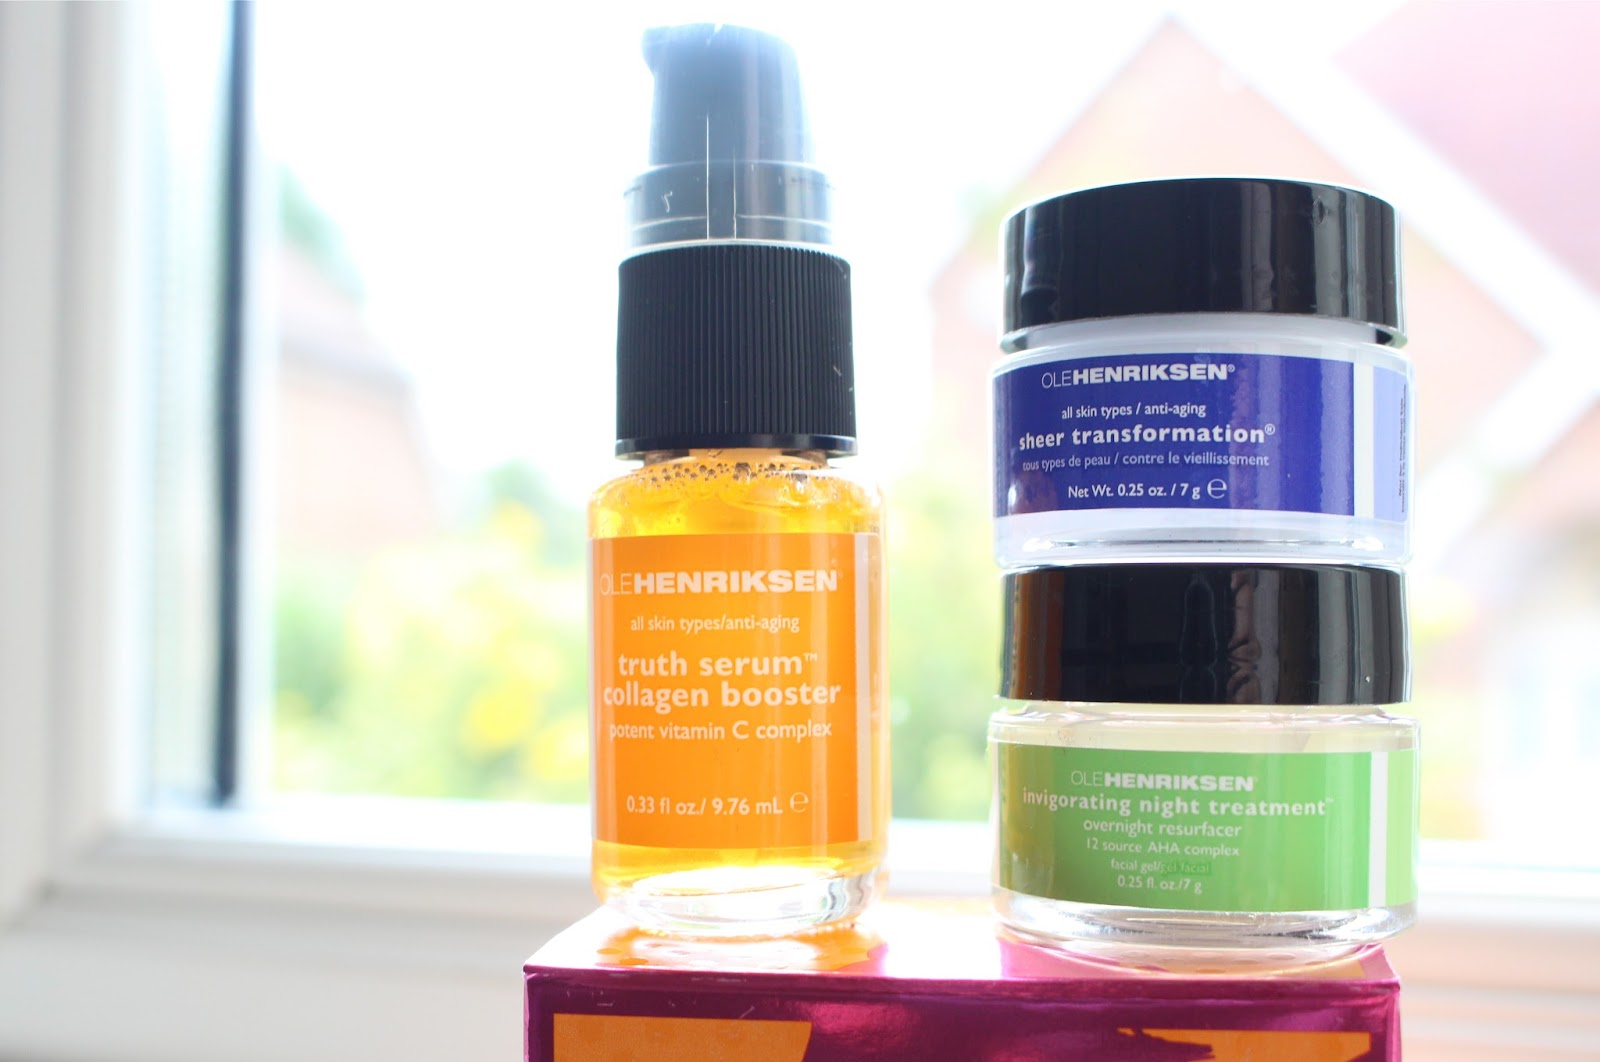 Find Your Balance Oil Control Cleanser by ole henriksen #21